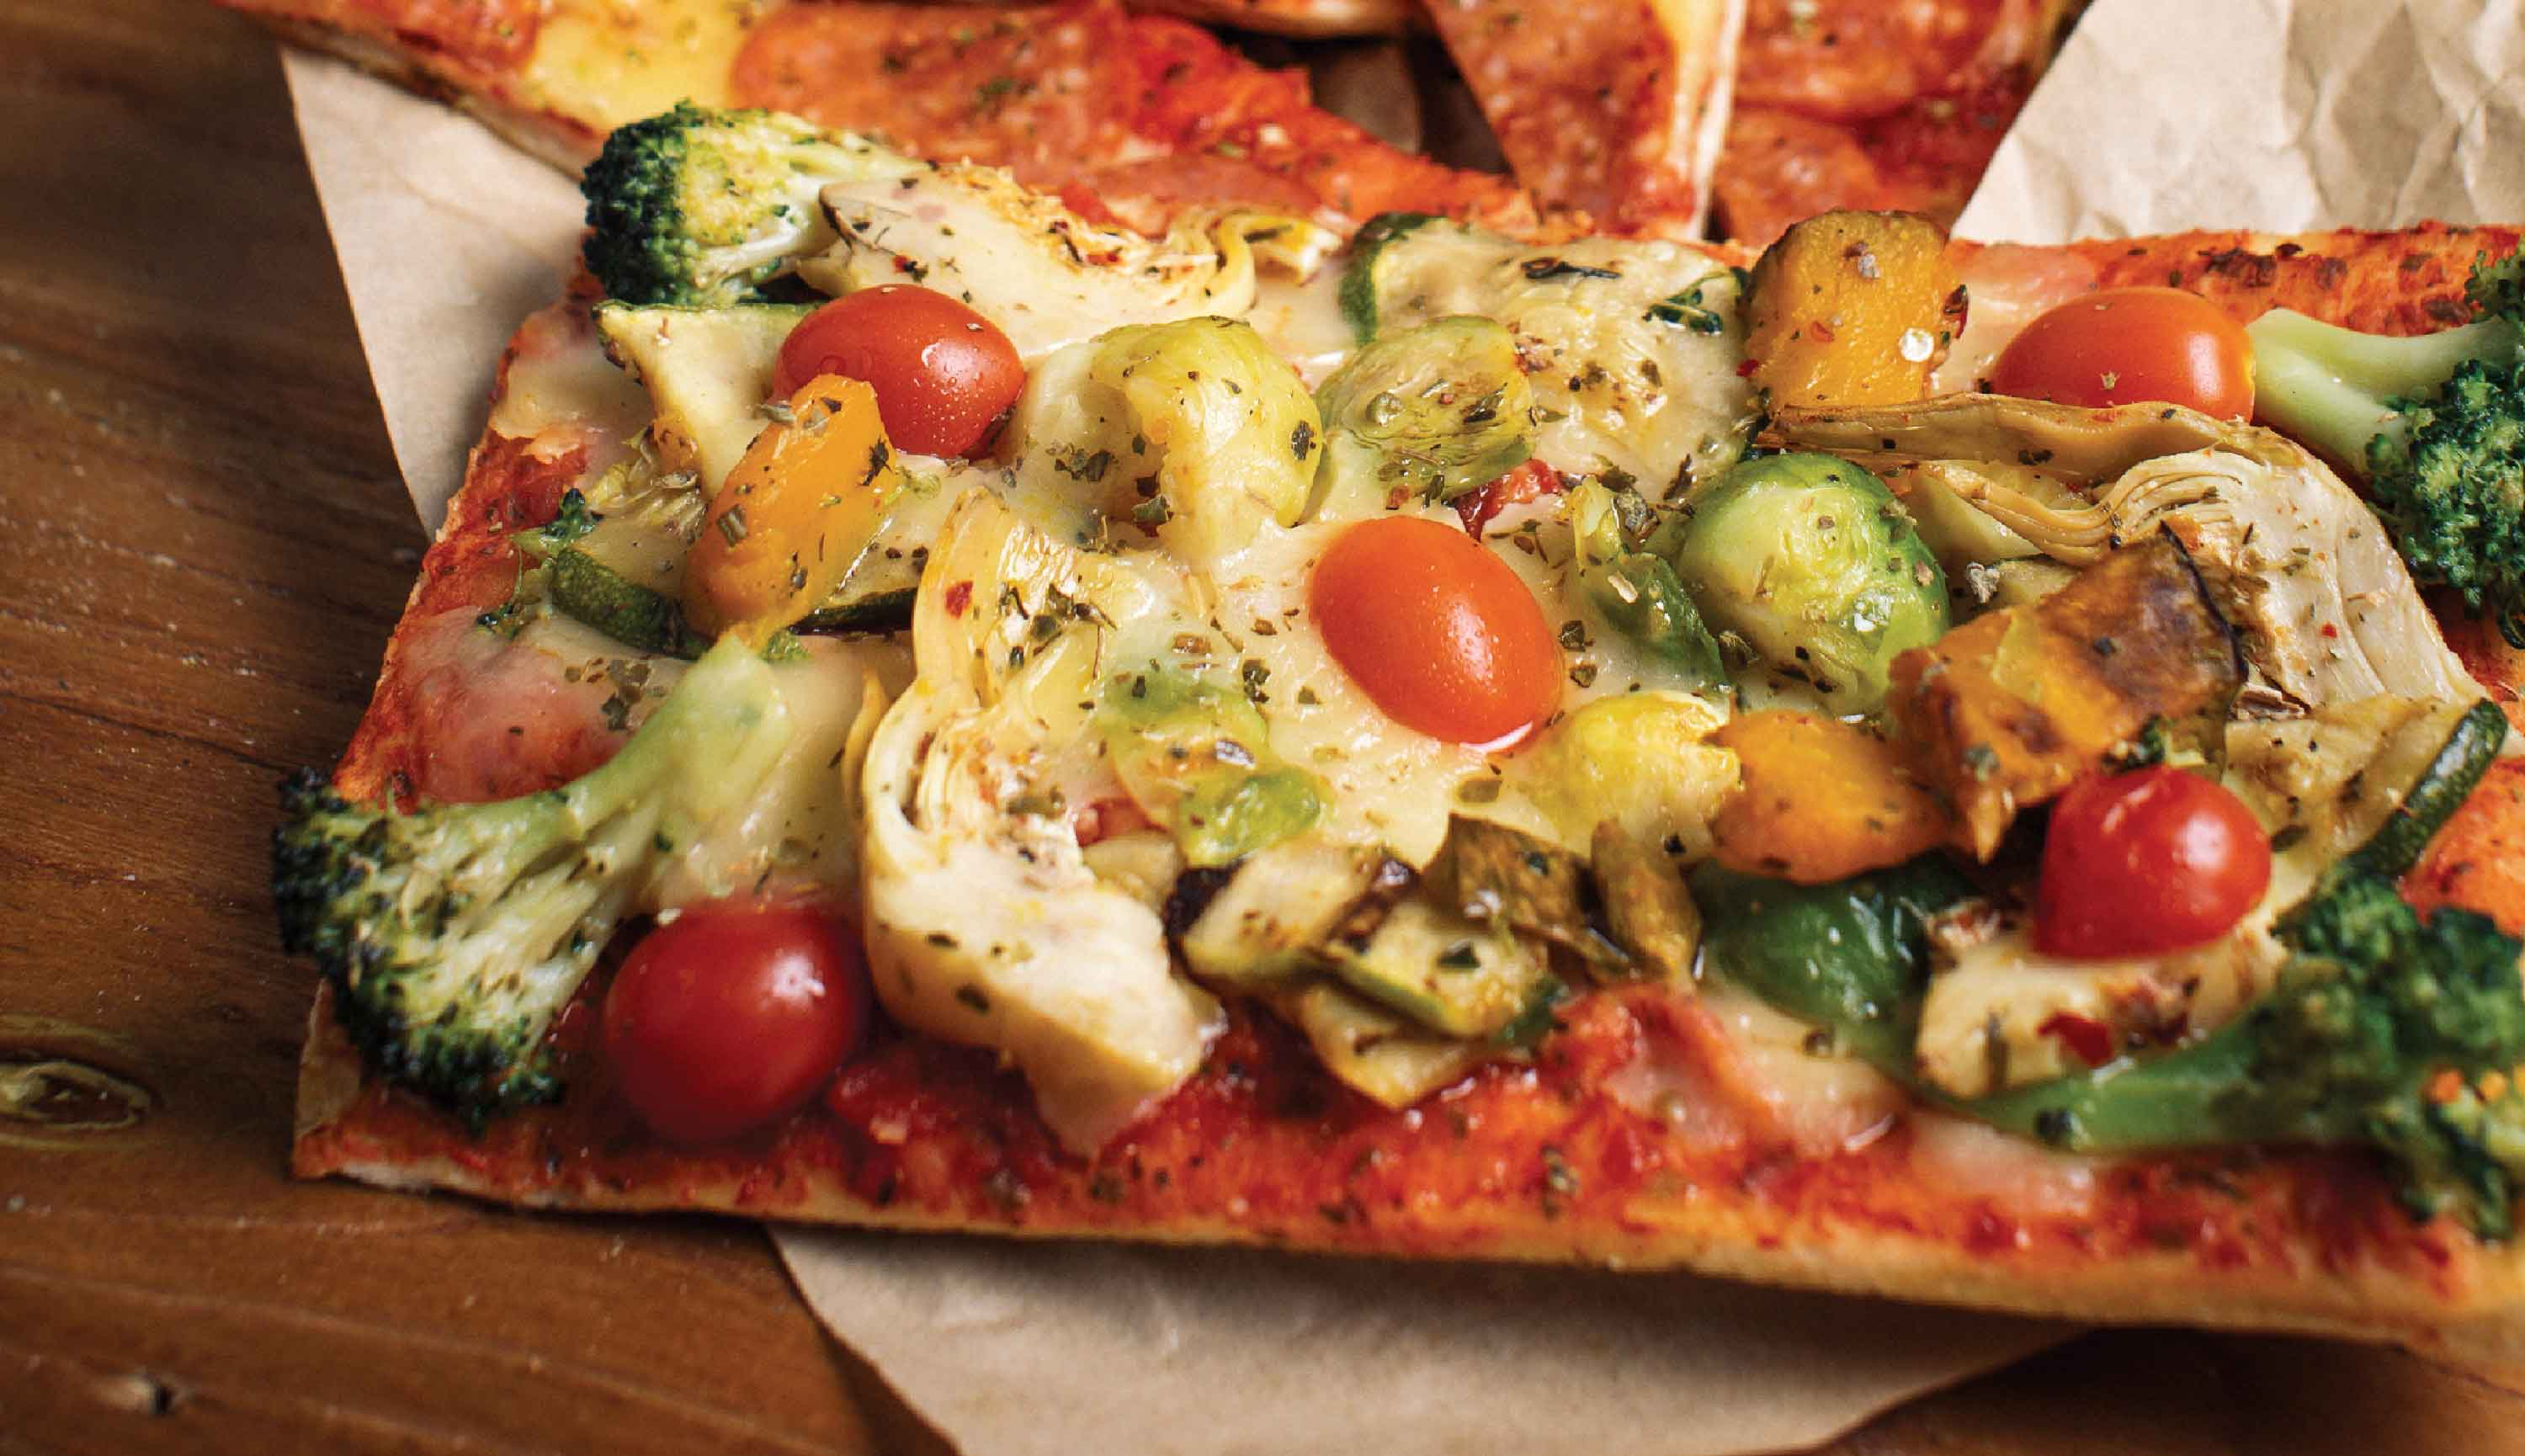 Dapaolo Signature Dishes - Vegetable Pizza